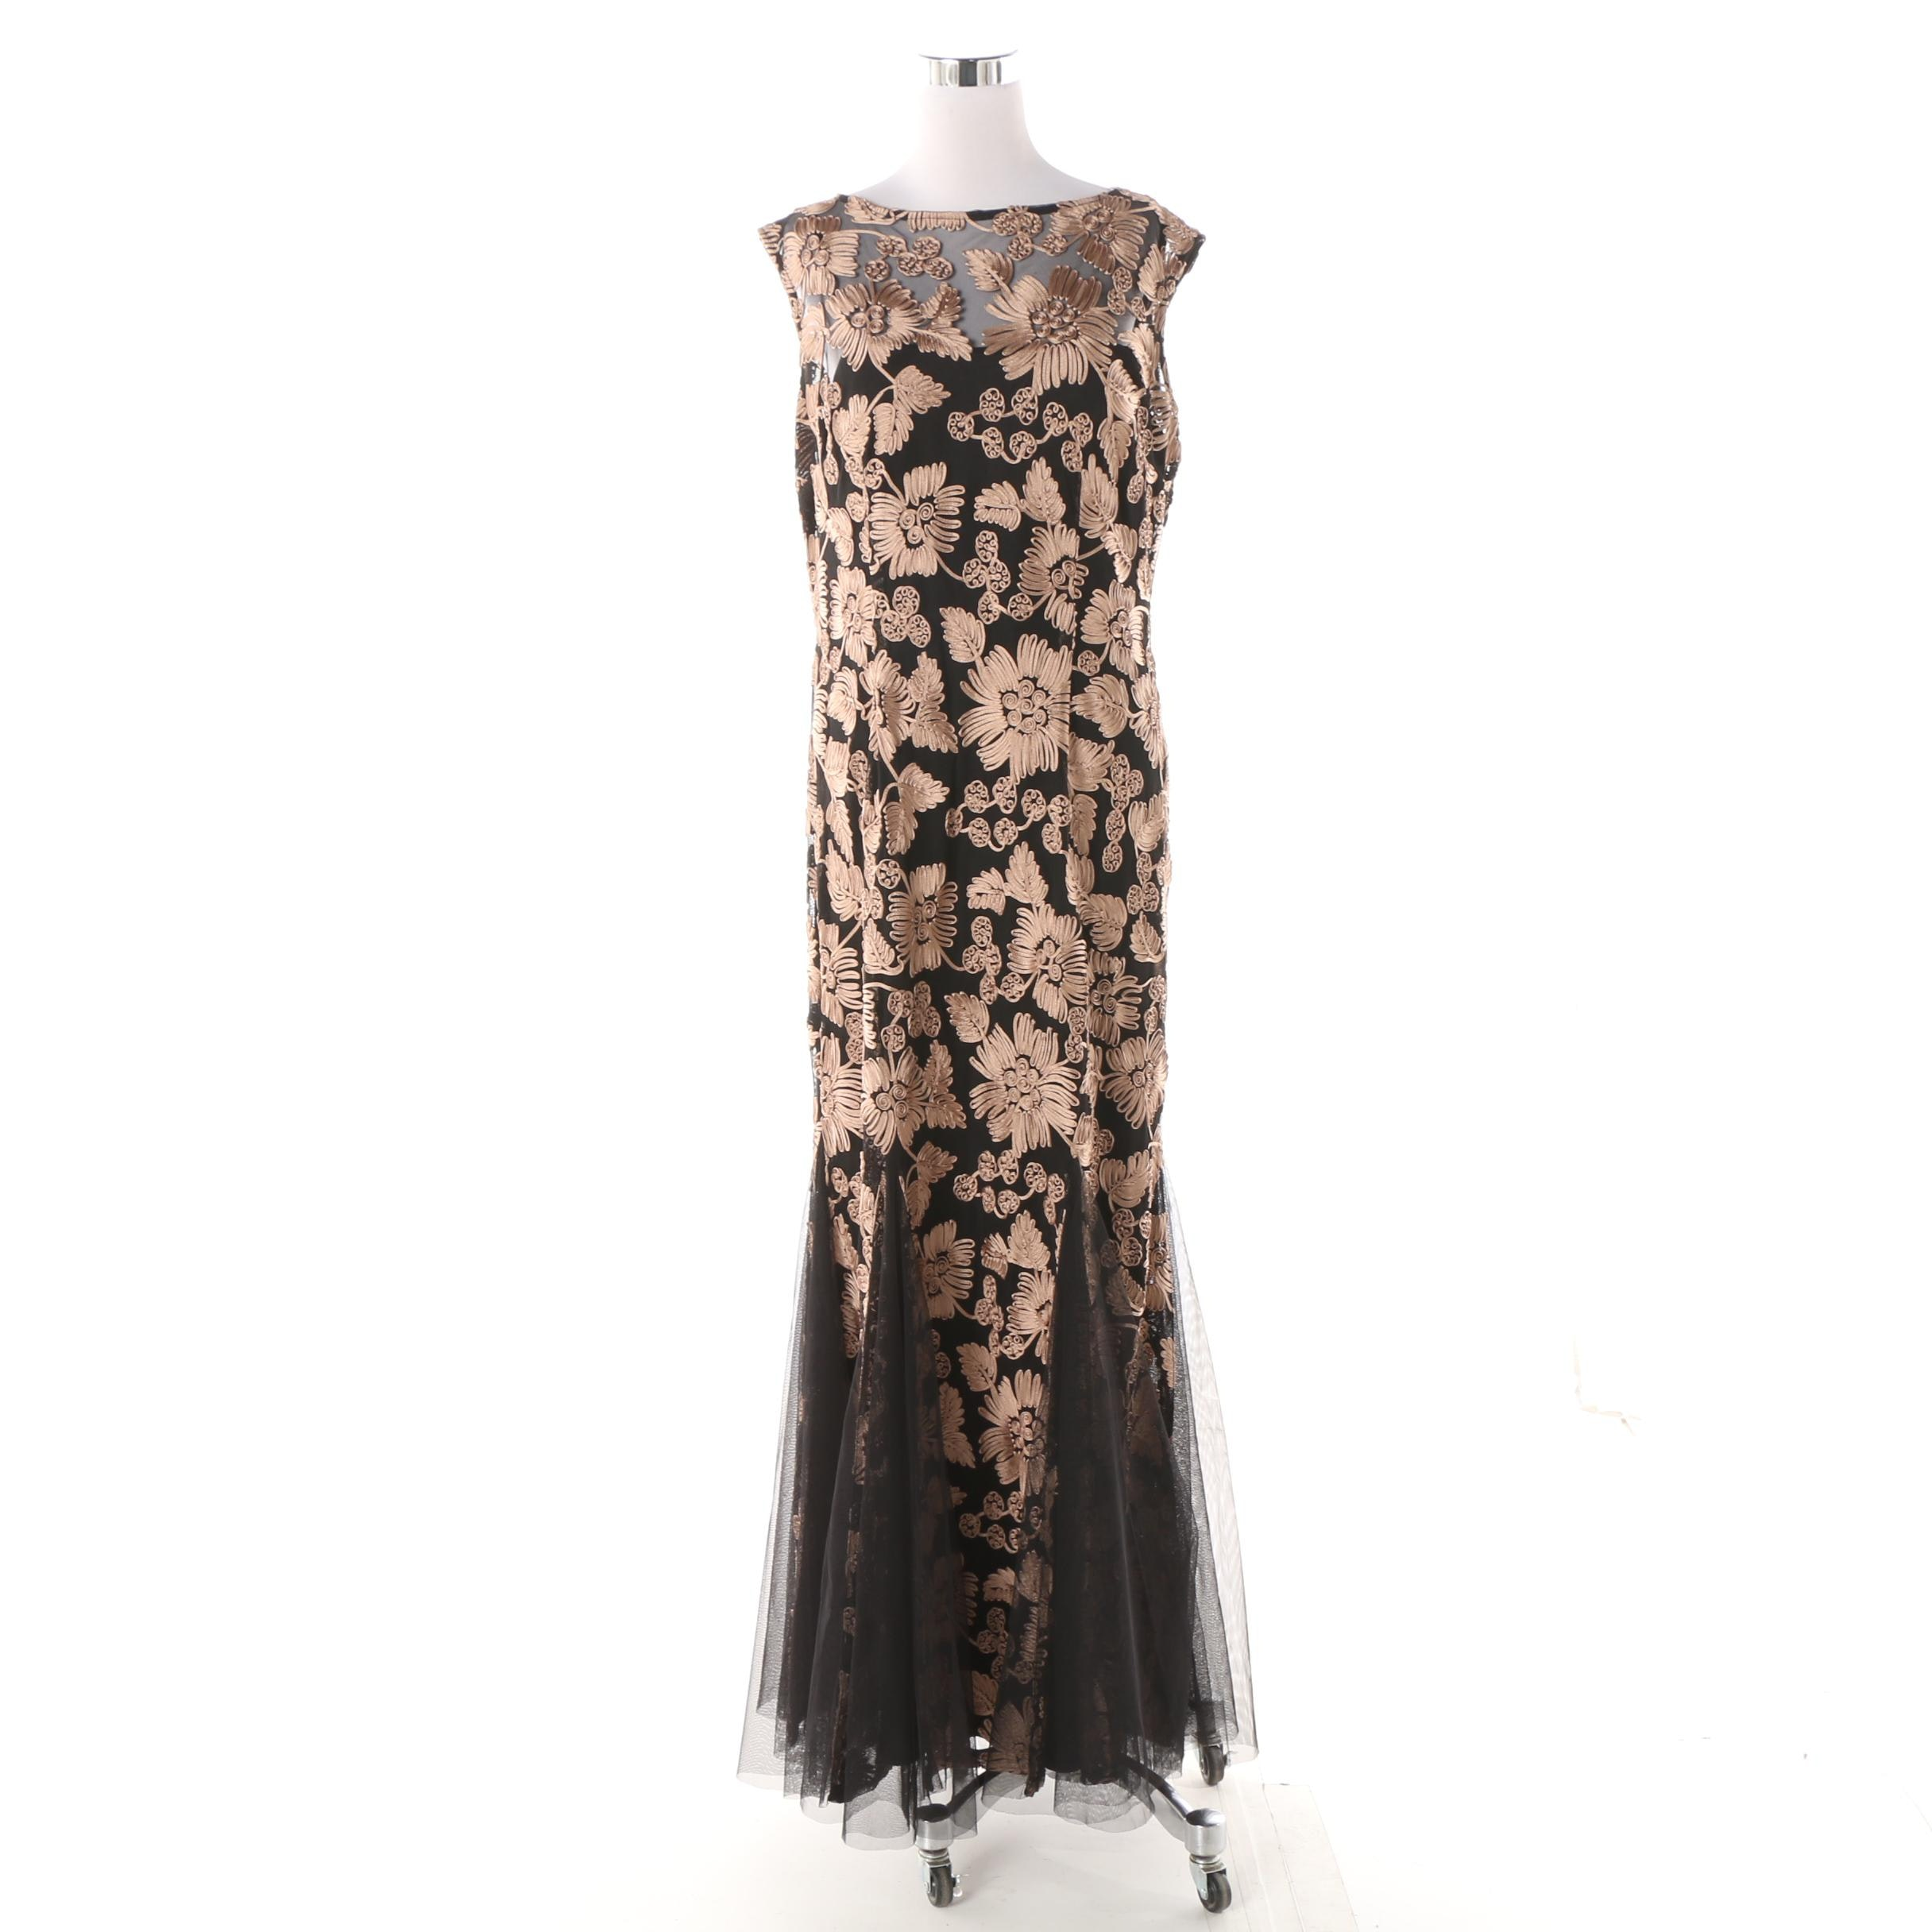 Alex Evenings Black Sleeveless Evening Dress with Tan Floral Soutache